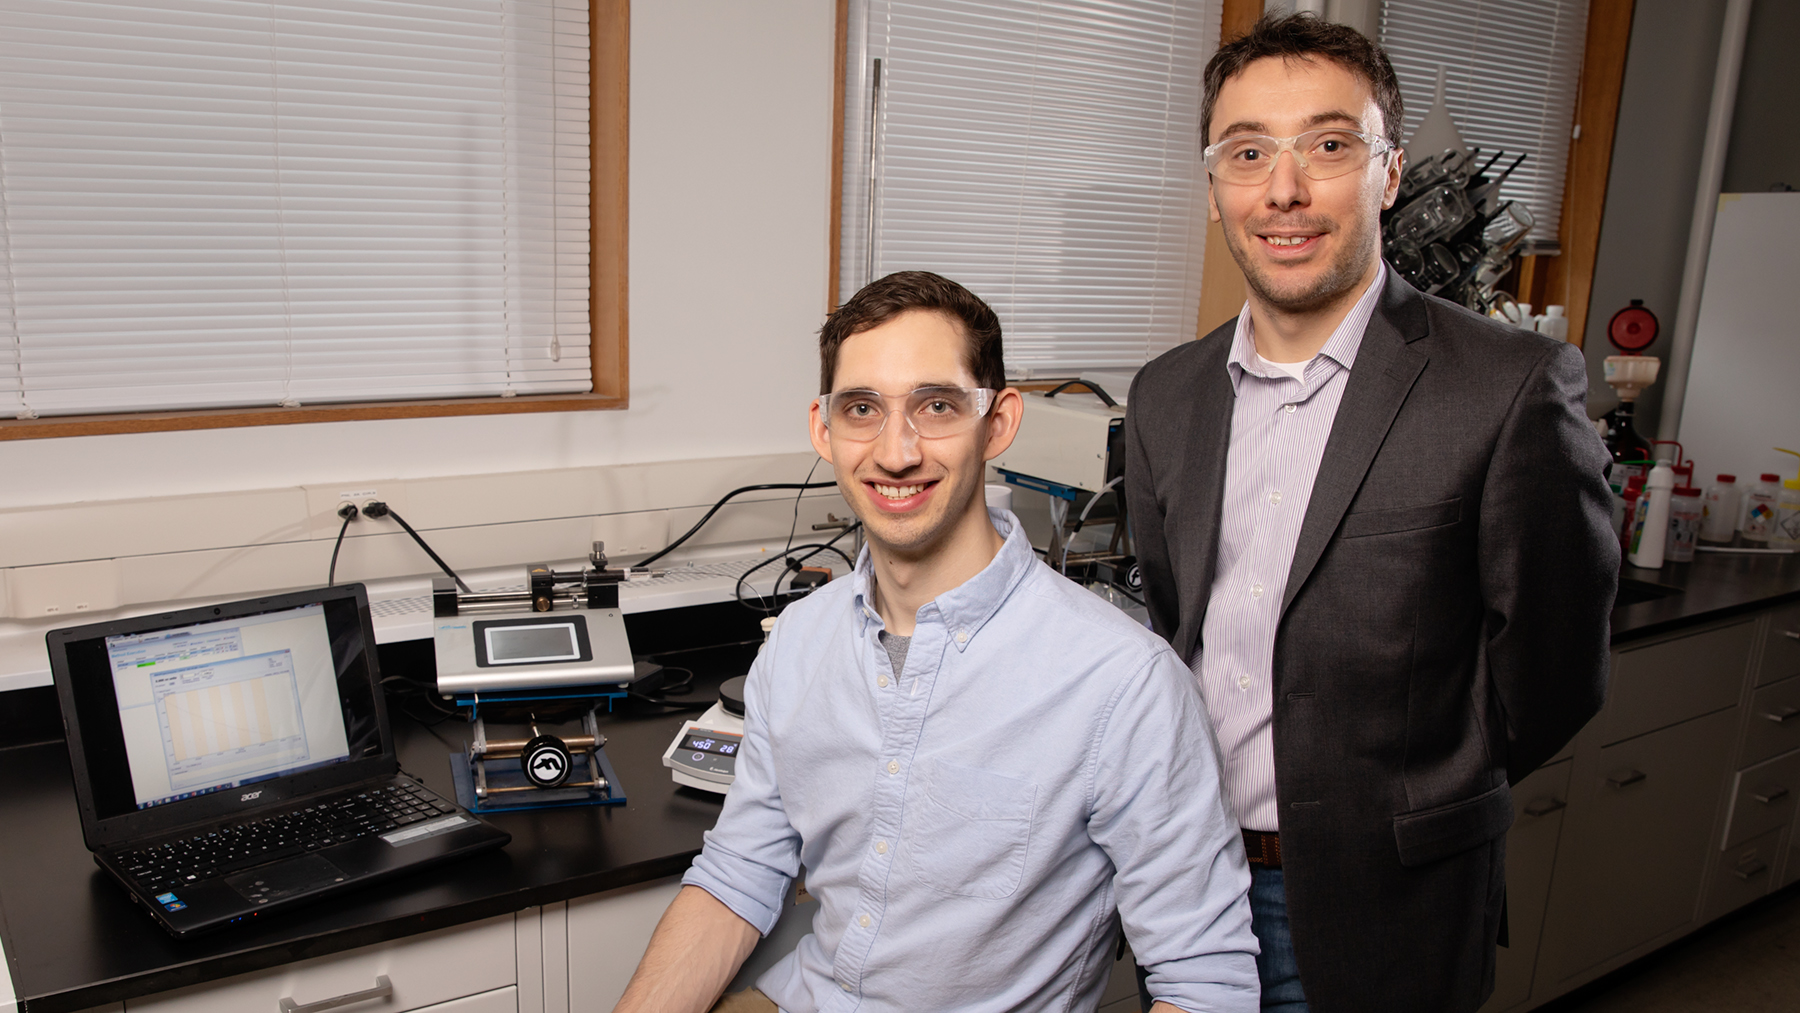 Chemical and biomolecular engineering professor Damien Guironnet, right, and graduate student Dylan Walsh